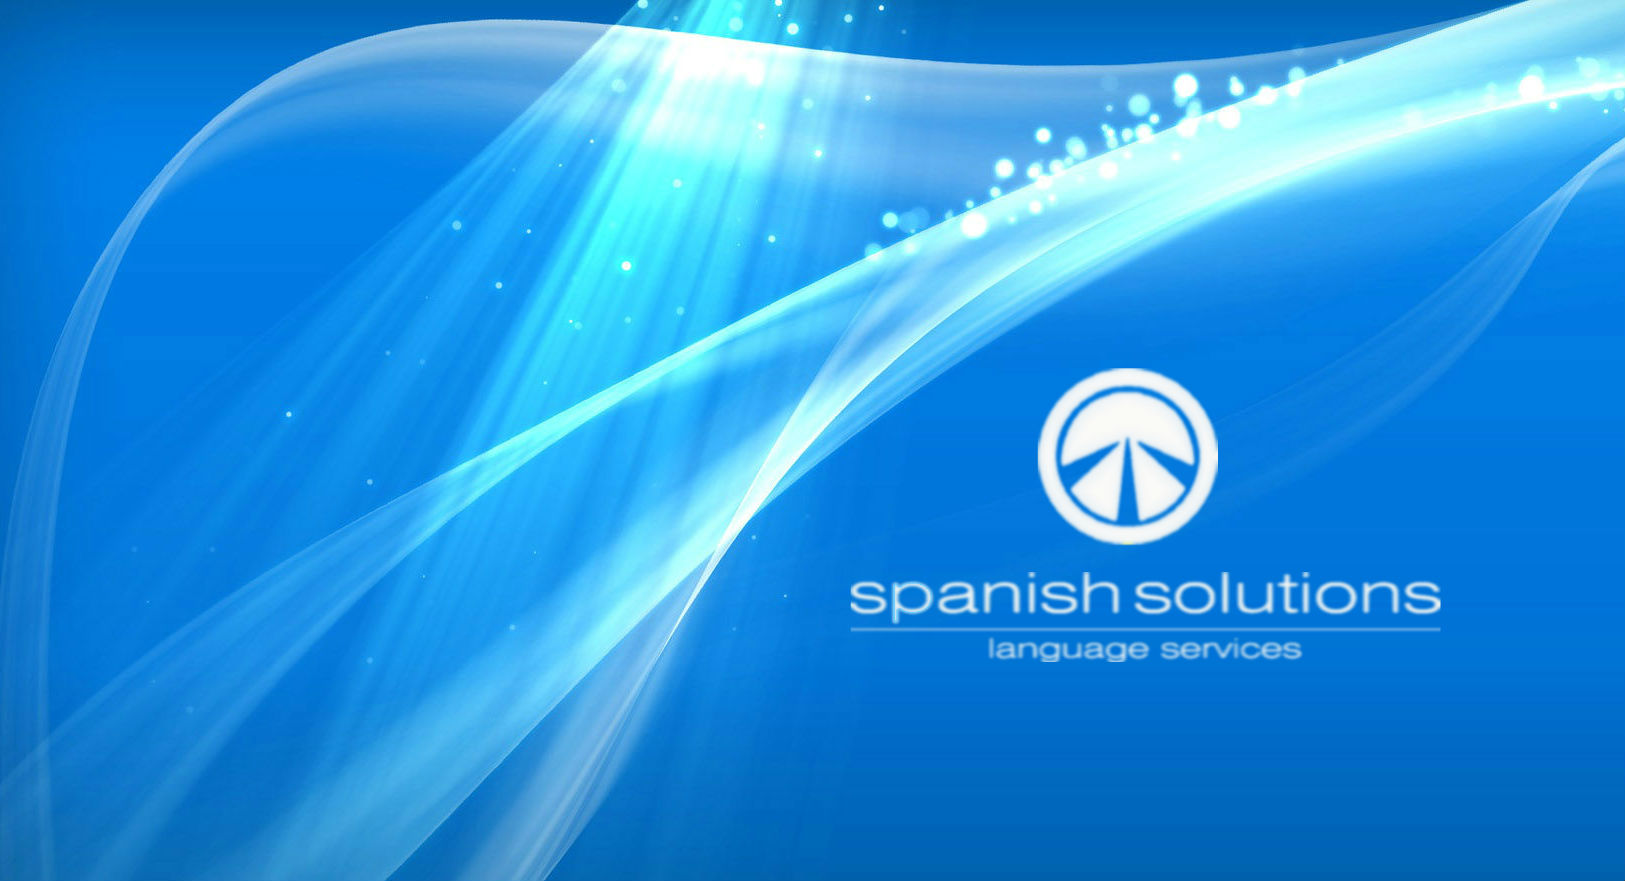 Spanish Solutions Language Services